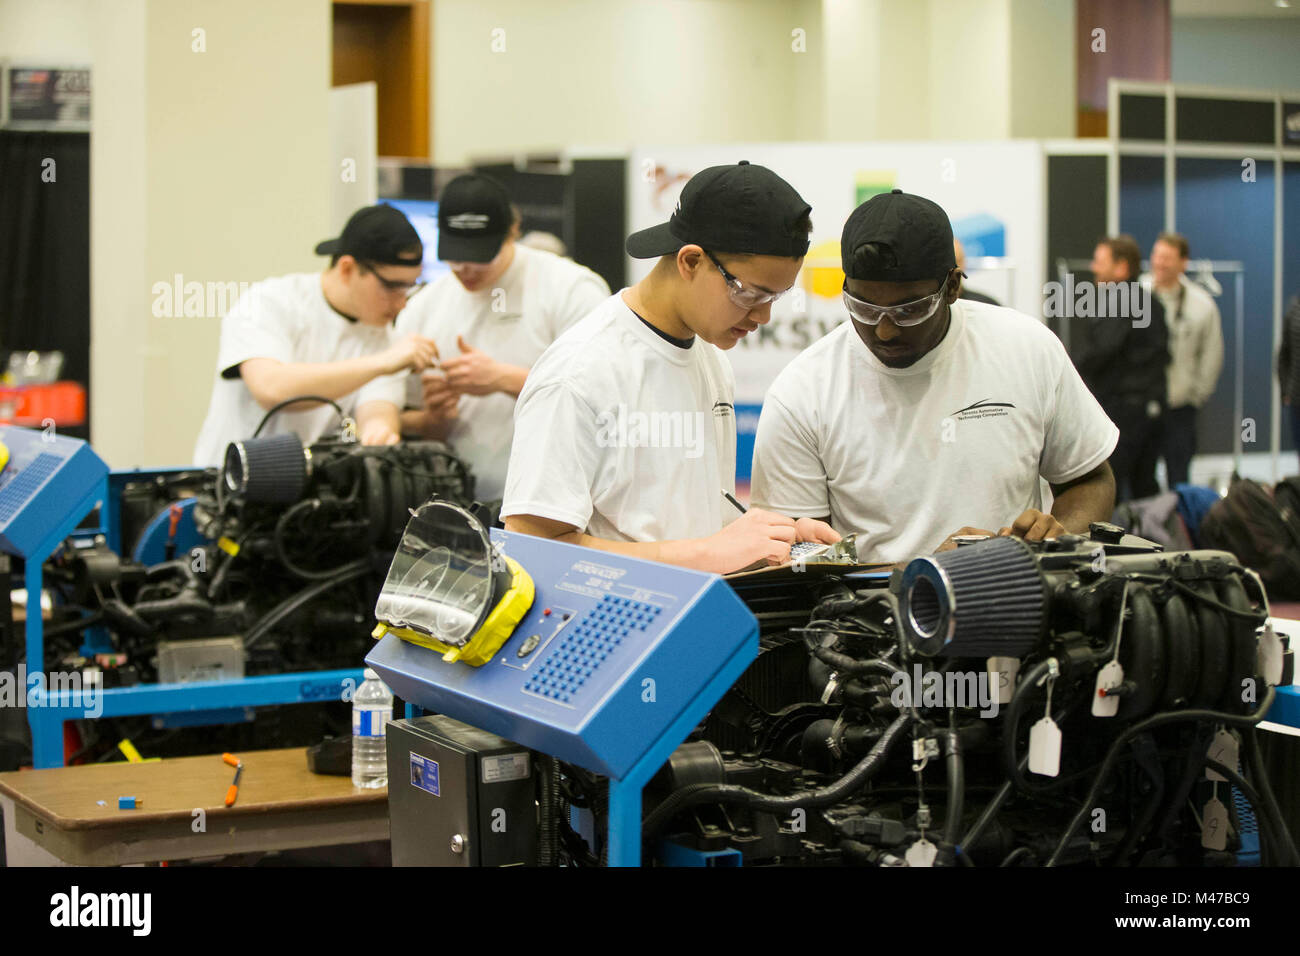 Toronto, Canada. 14th Feb, 2018. Competitors take an engine mechanical analysis during the 19th Toronto Automotive - Stock Image